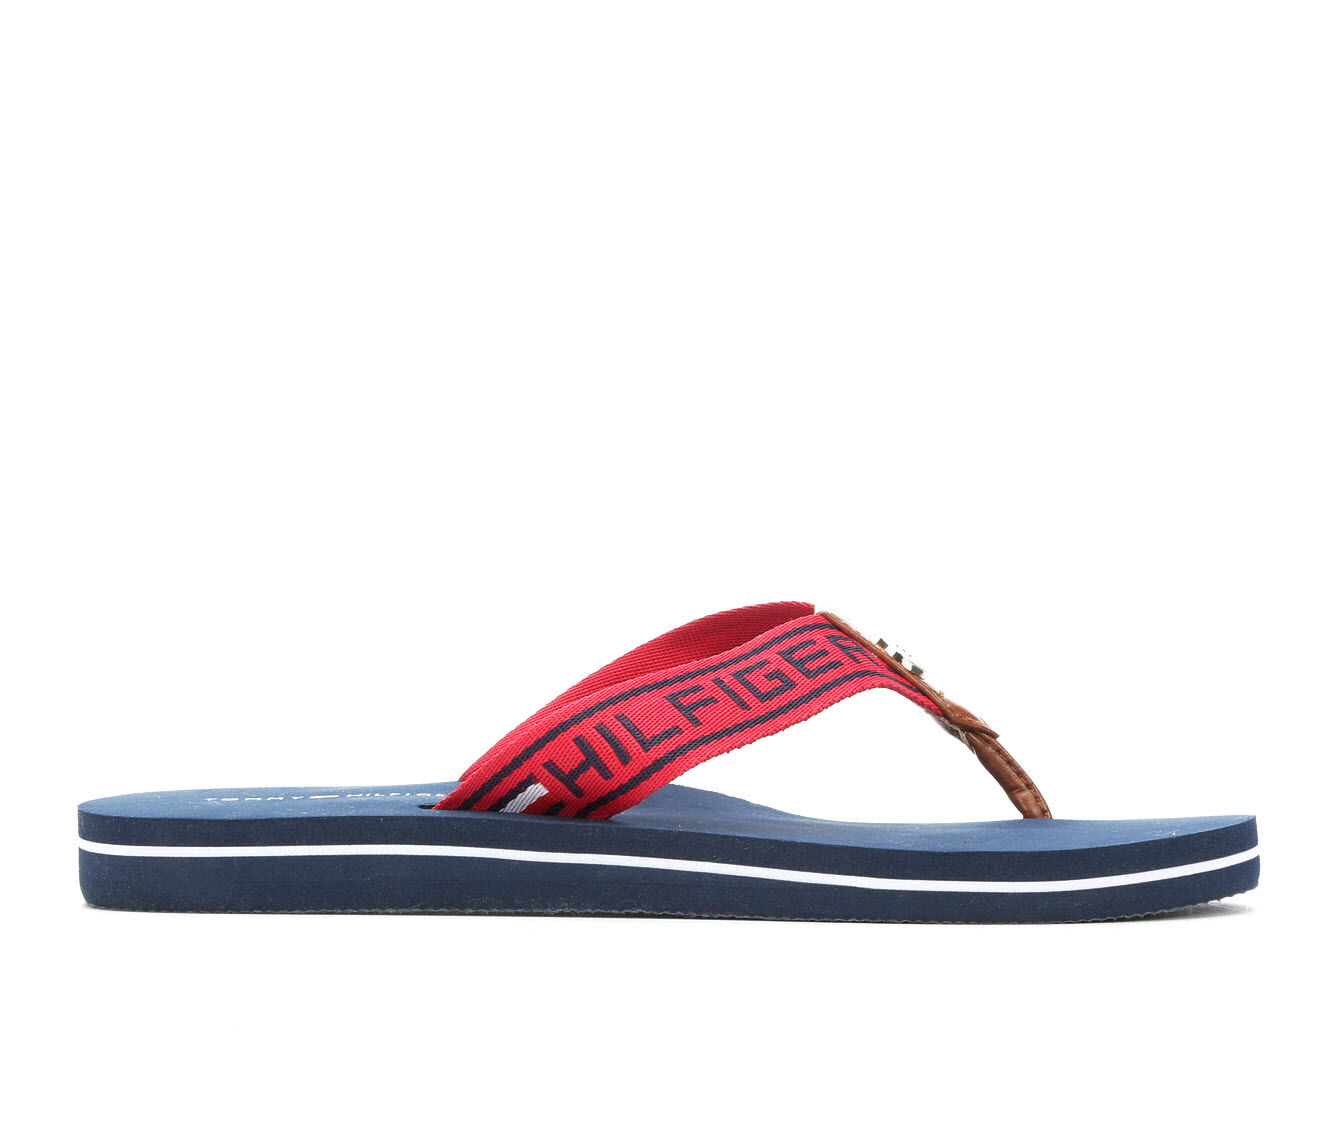 new fashion style Women's Tommy Hilfiger Cleen 2 Sandals Red Multi